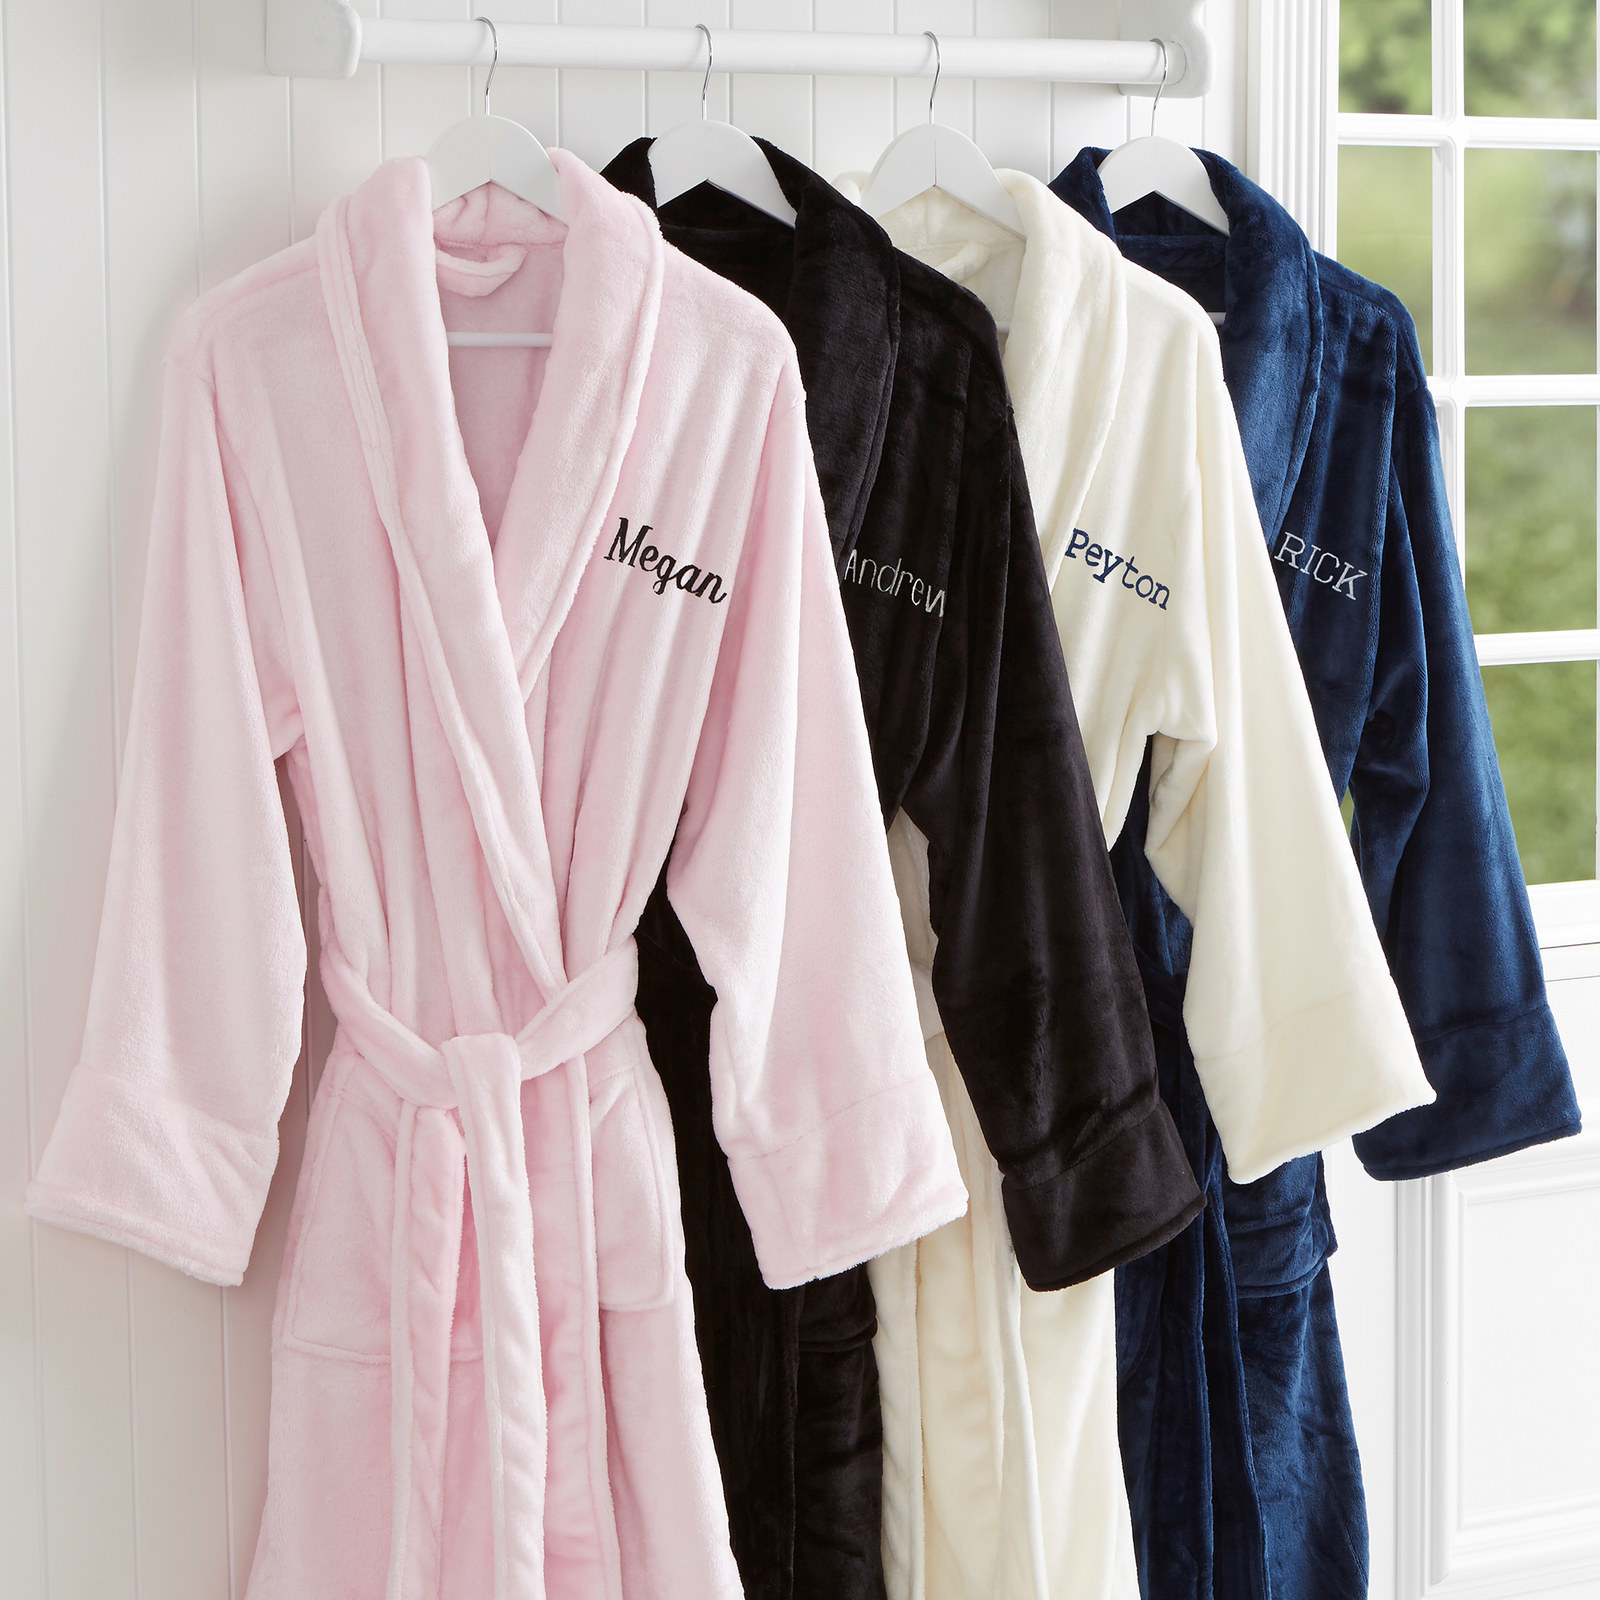 A pink, black, white, and blue robe with names embroidered on the left chest